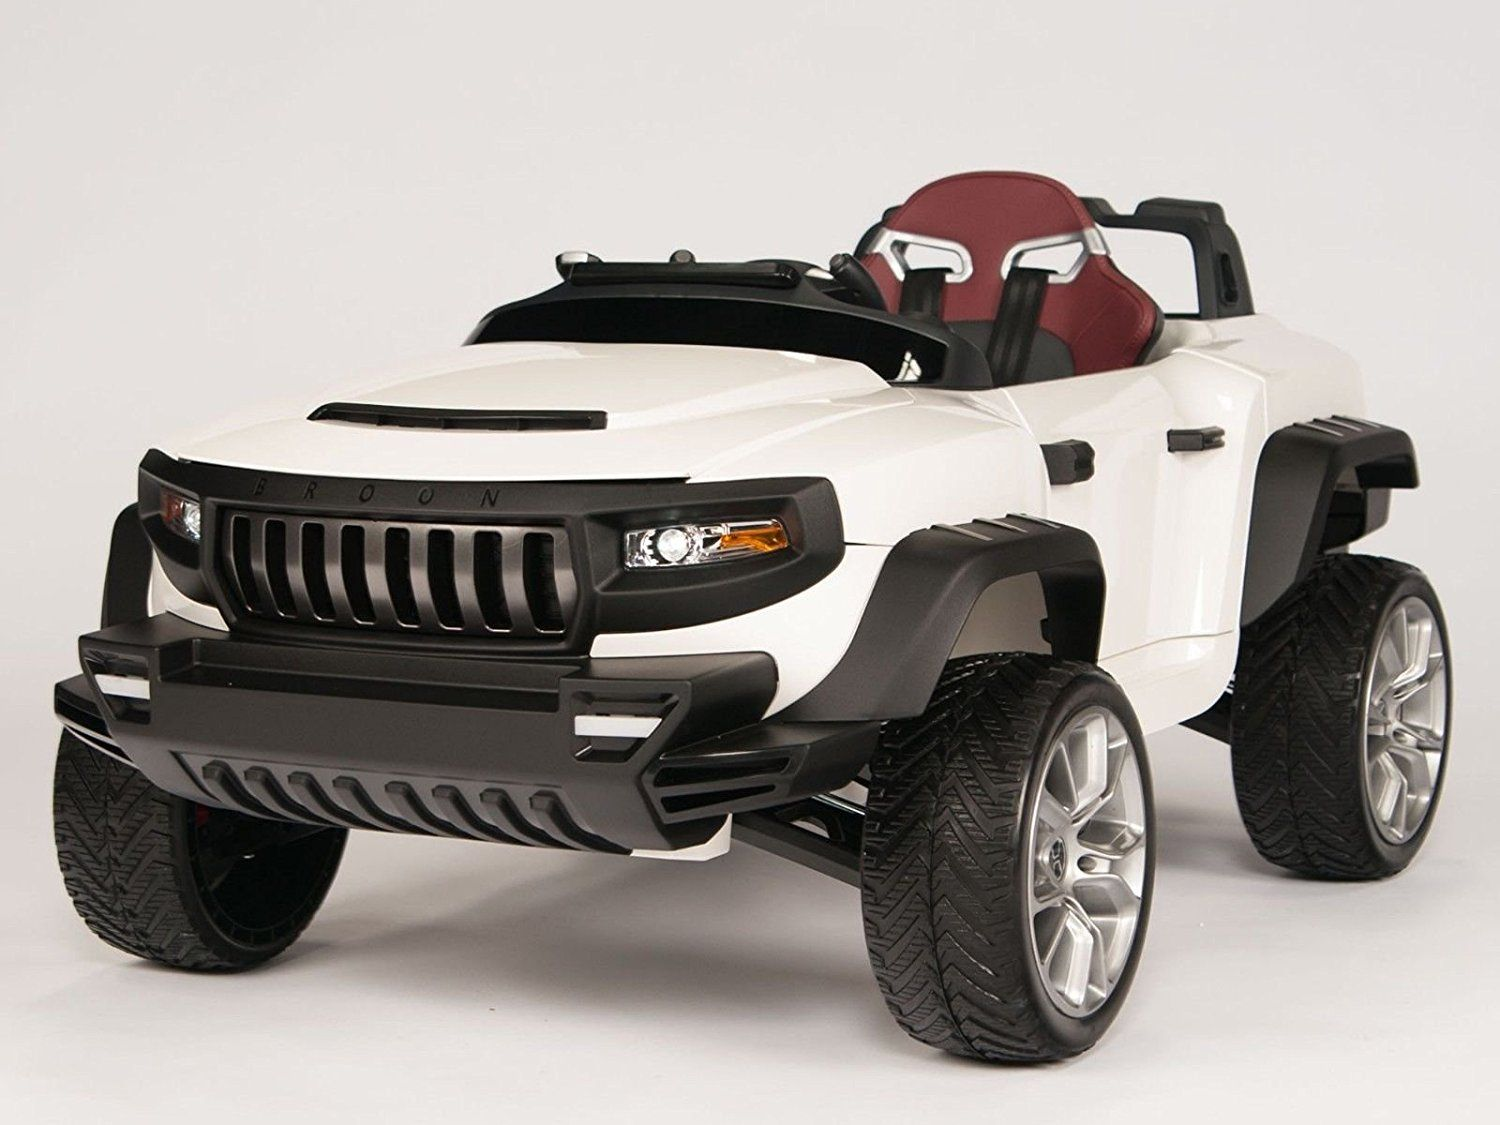 AmazonSmile: Henes Broon T870 Kids Ride On Jeep 24V Power with